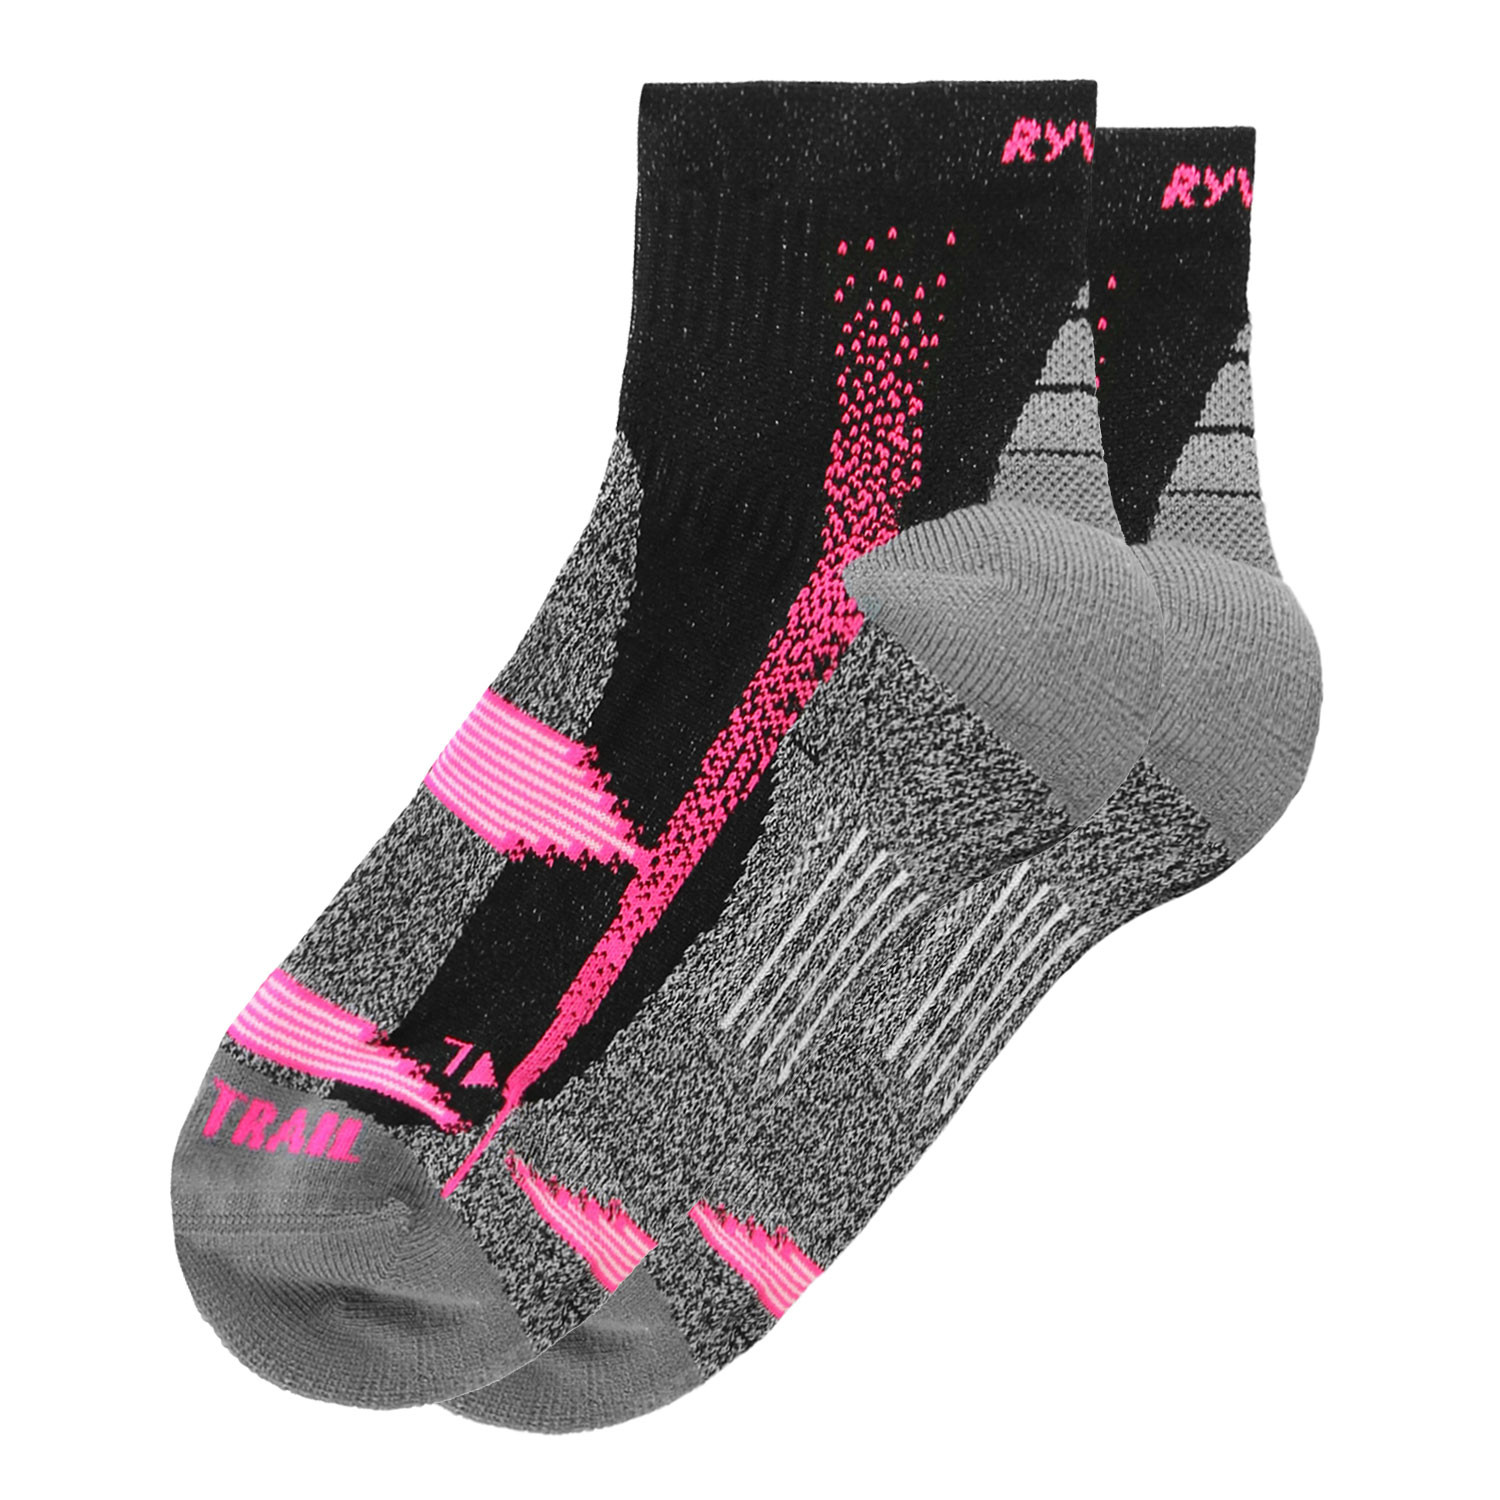 Atmo Trail Chaussettes Running Unisexe